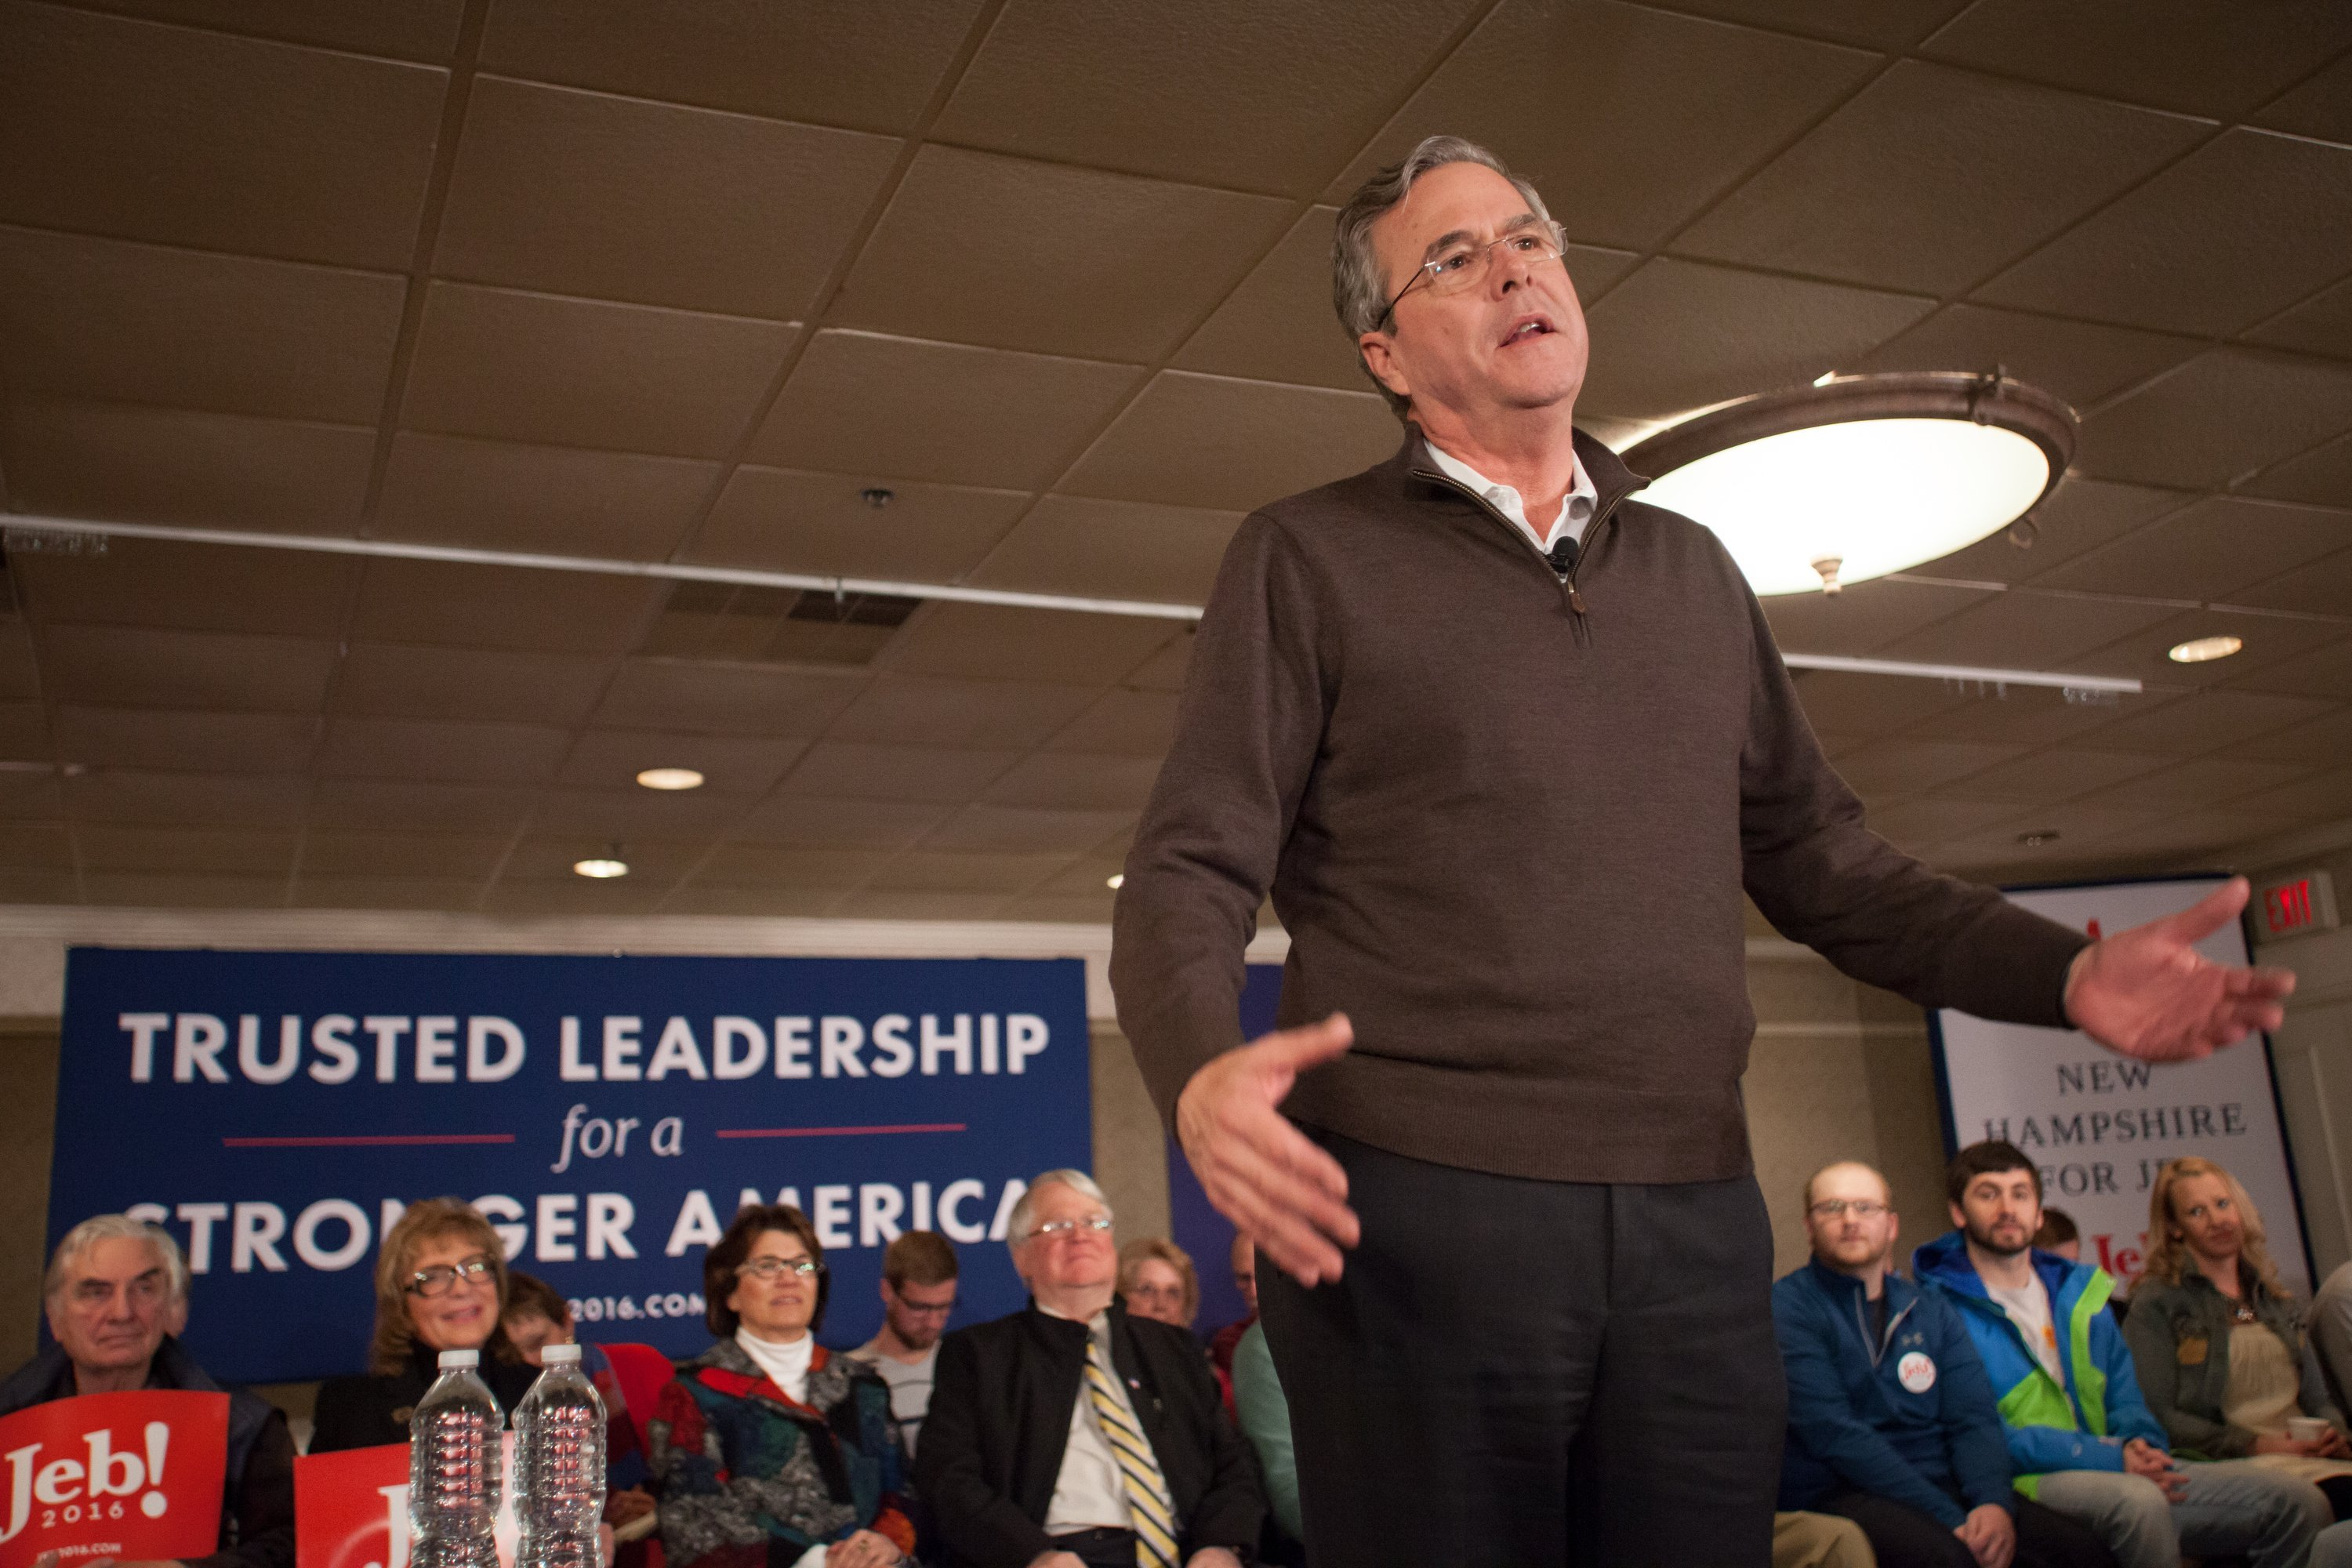 Republican presidential candidate Jeb Bush delivering a speech at the Margate Resort in Laconia, New Hampshire, in 2016 | Photo: Getty Images